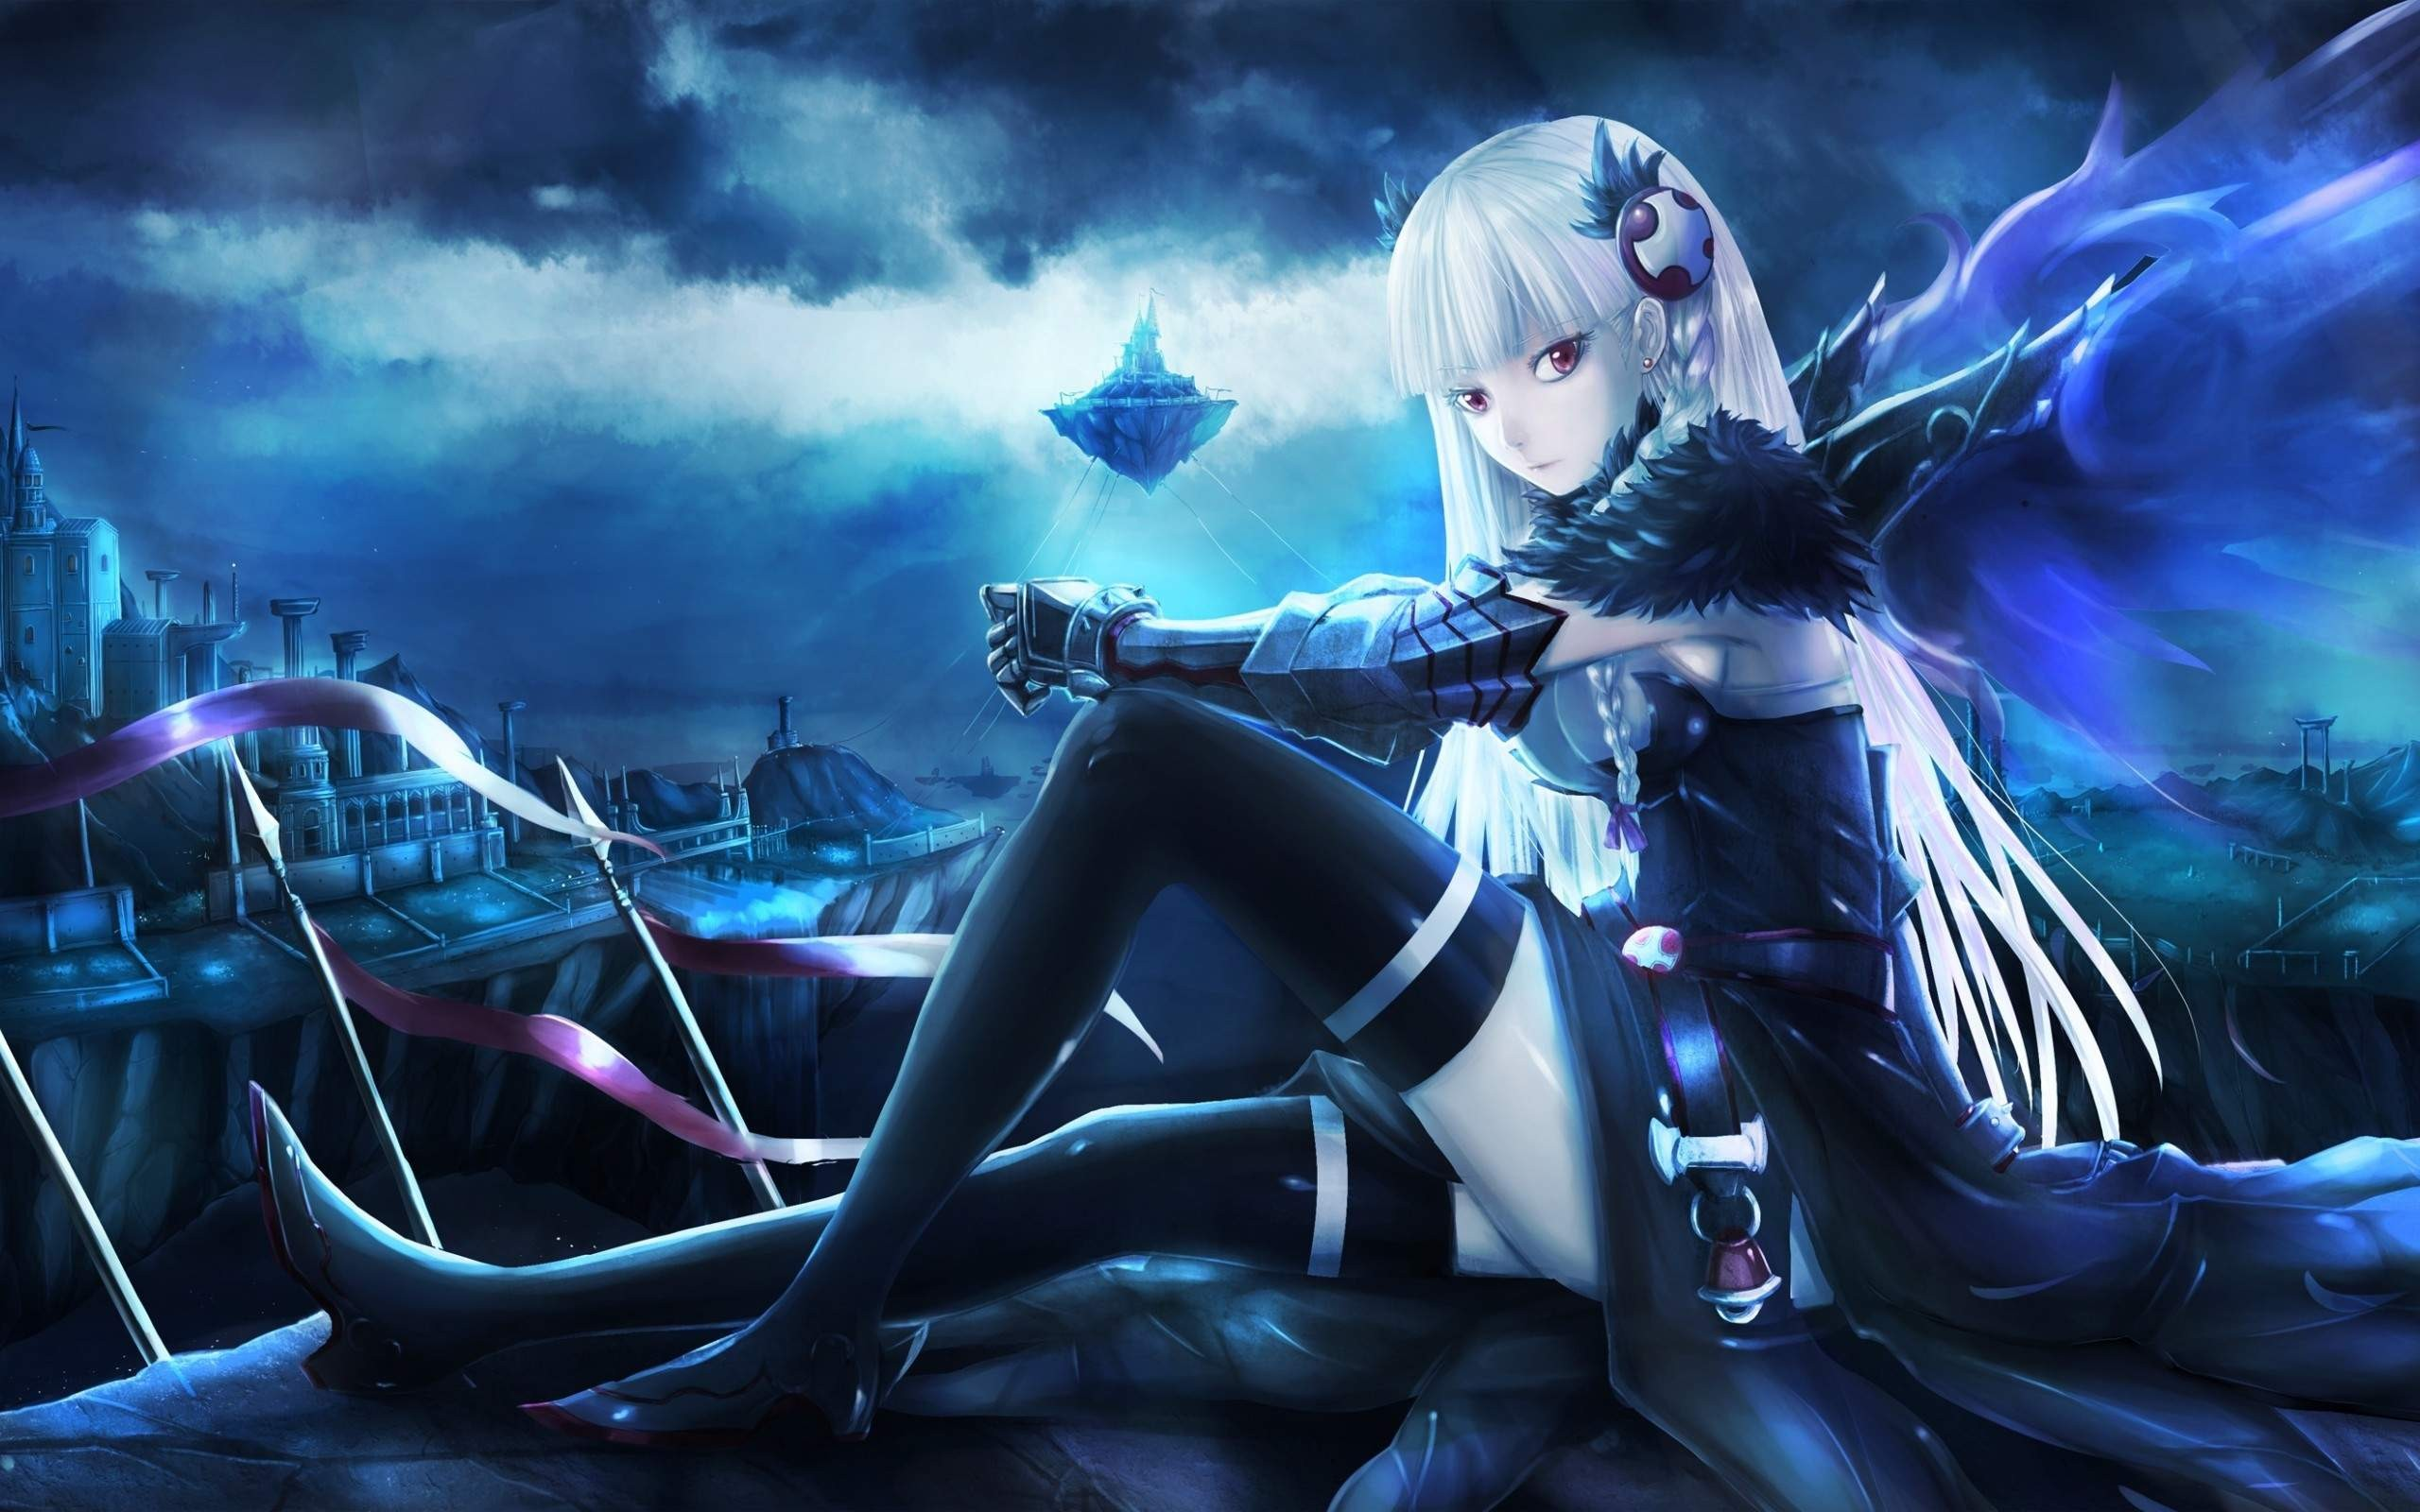 Anime girl wallpaper hd download free cool full hd - Blue anime wallpaper ...